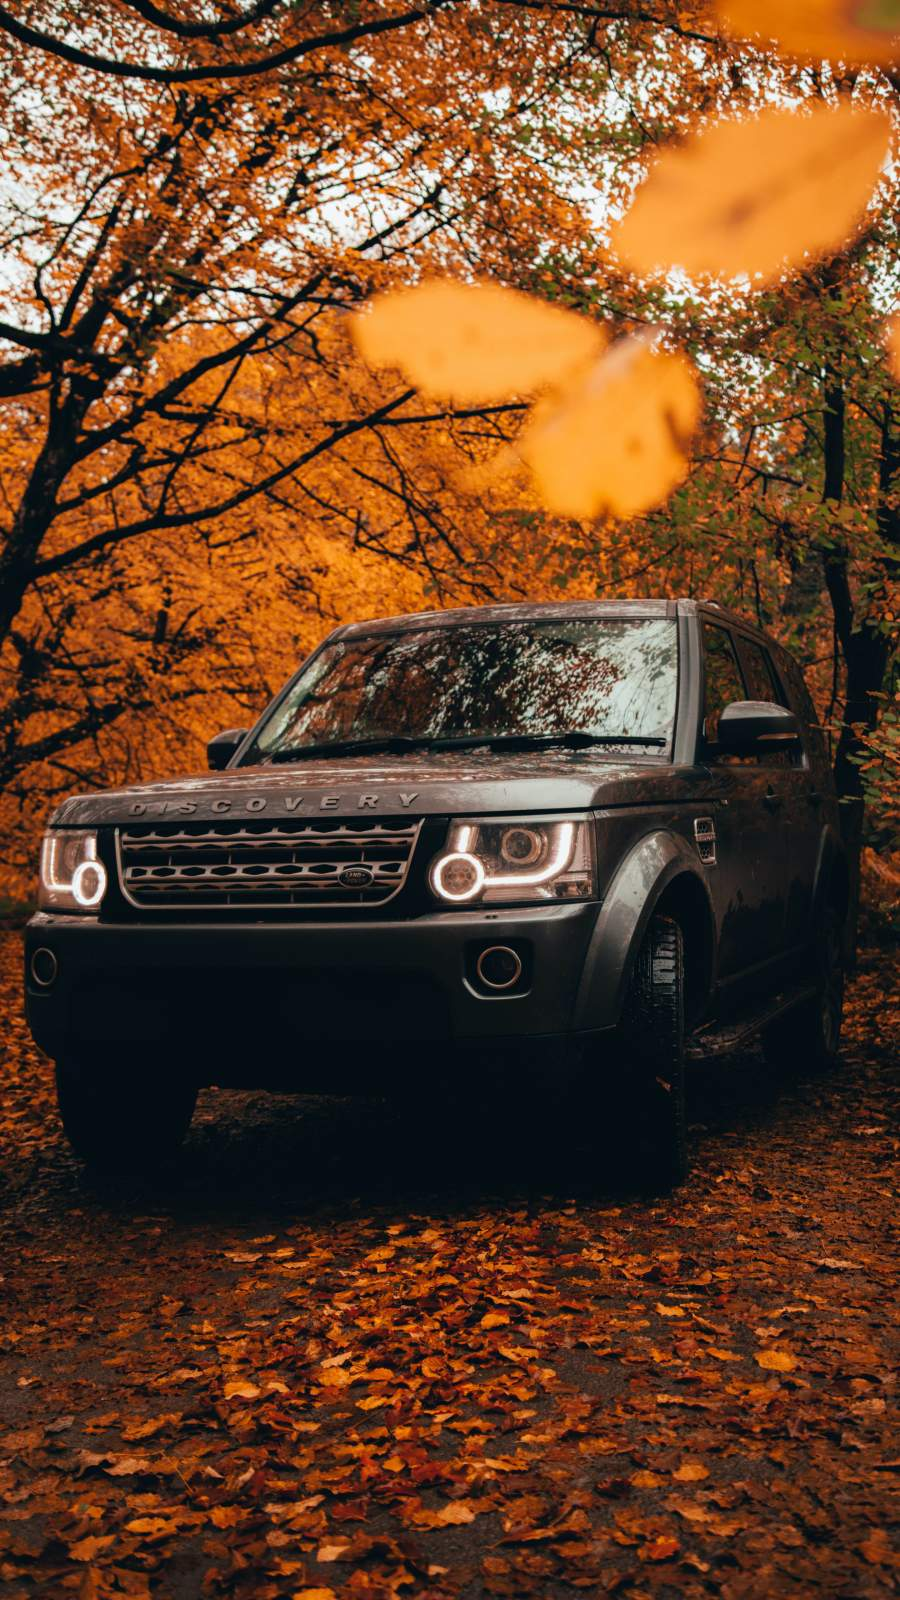 Land Rover Discovery Autumn